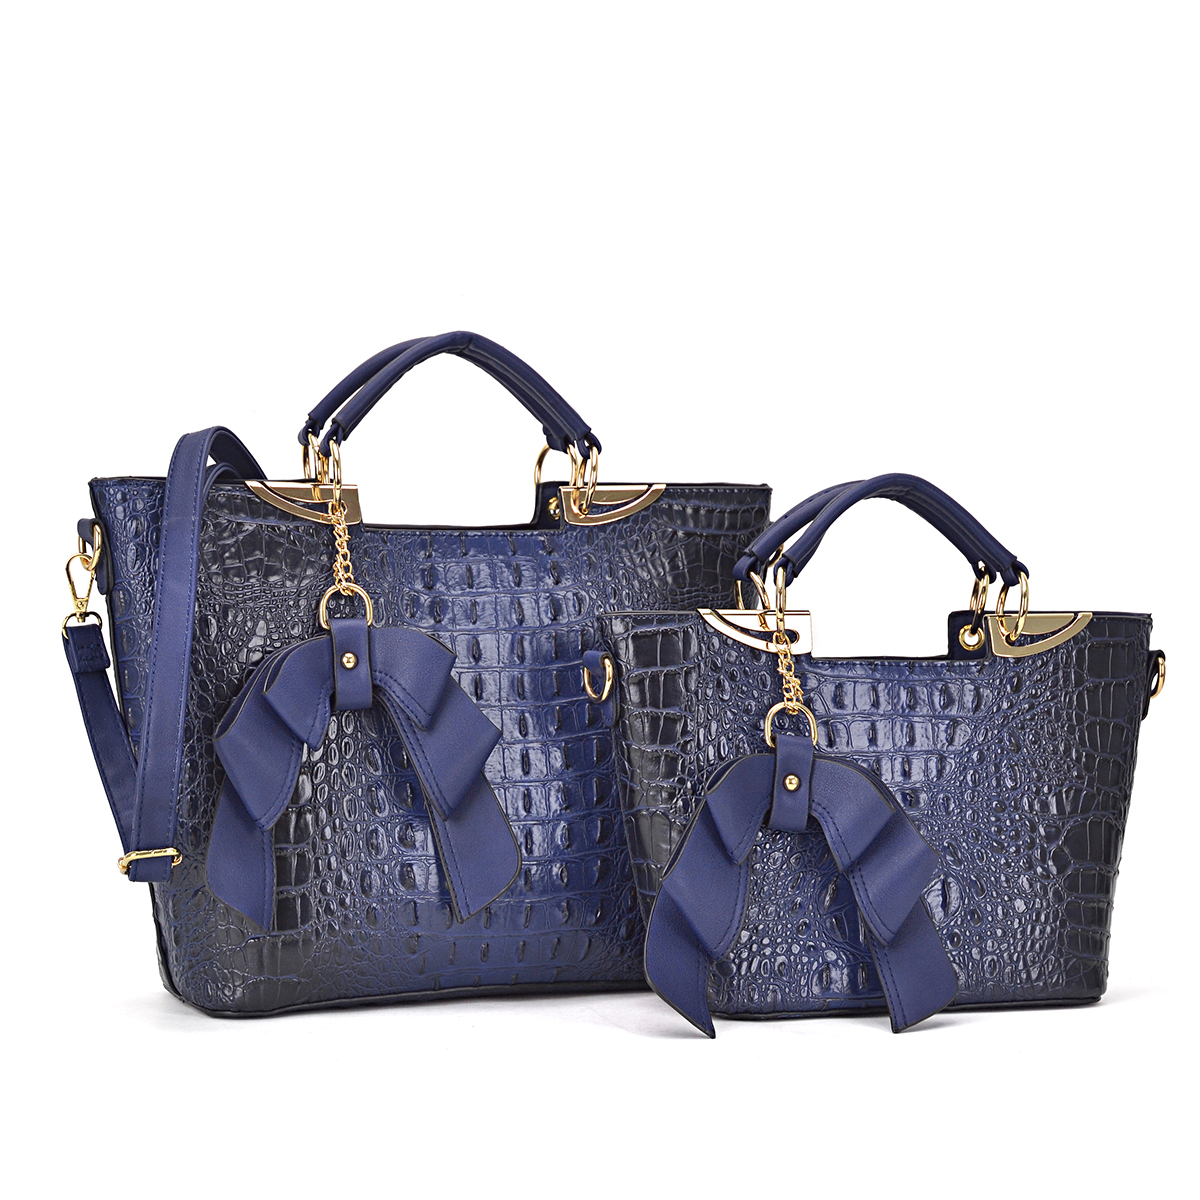 2-in-1, Bag-in-a-bag, Croco Ostrich Medium Satchel